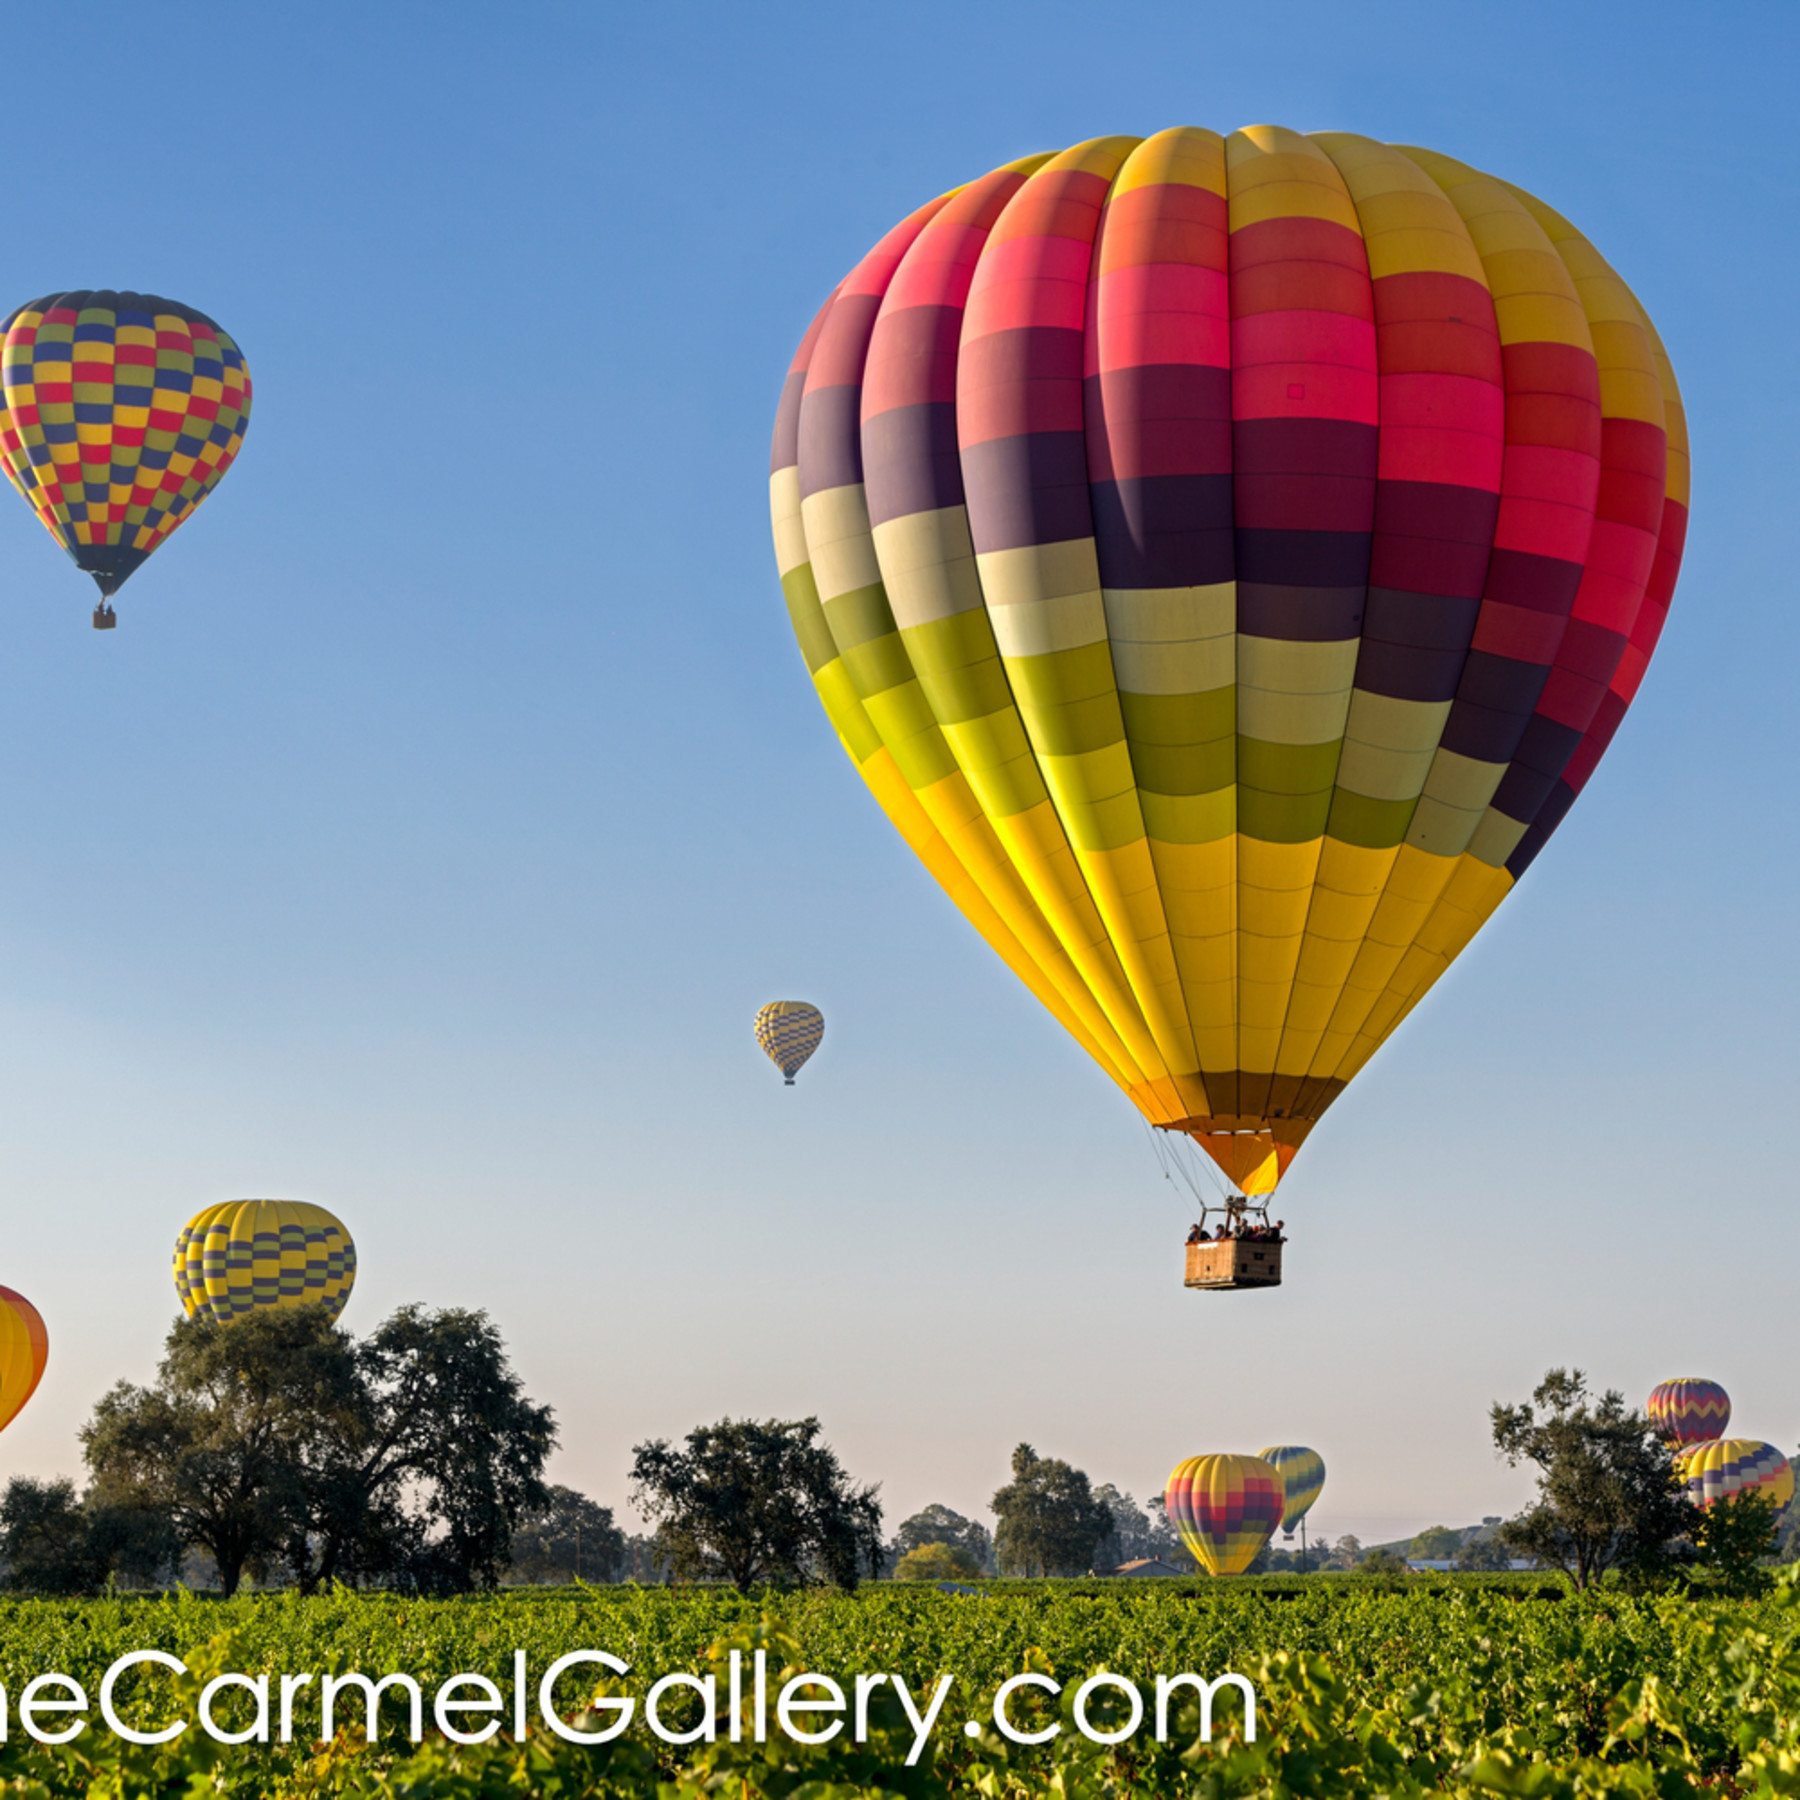 Napa valley balloons txy7gy